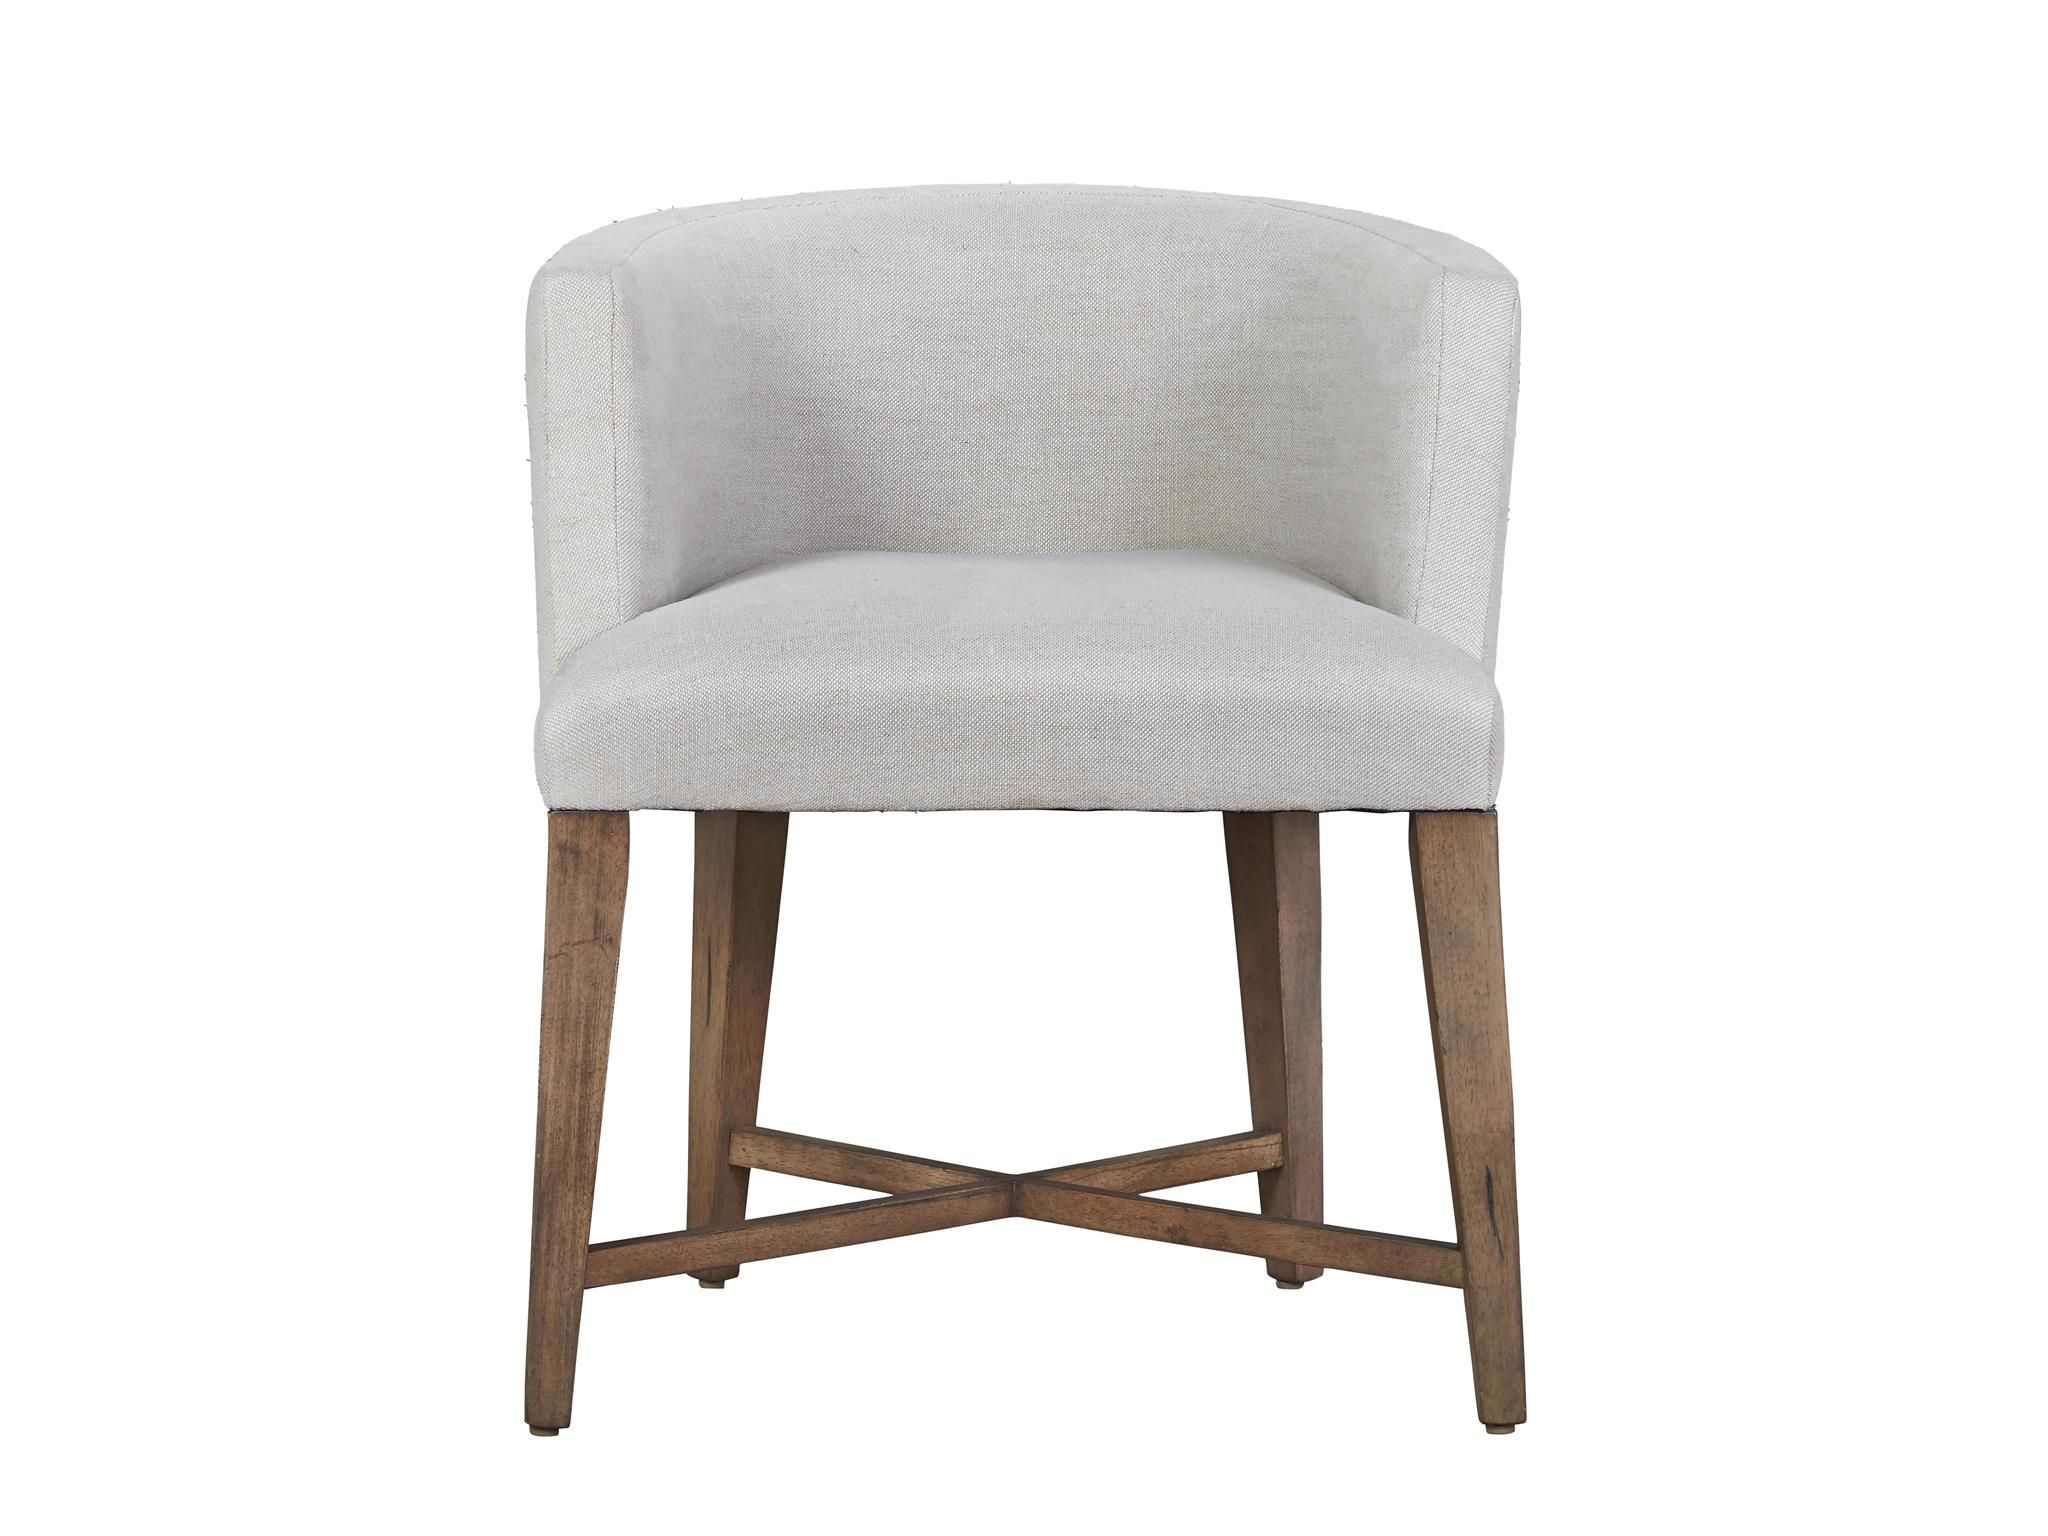 Universal Furniture Authenticity Slip Covered Barrel Chair